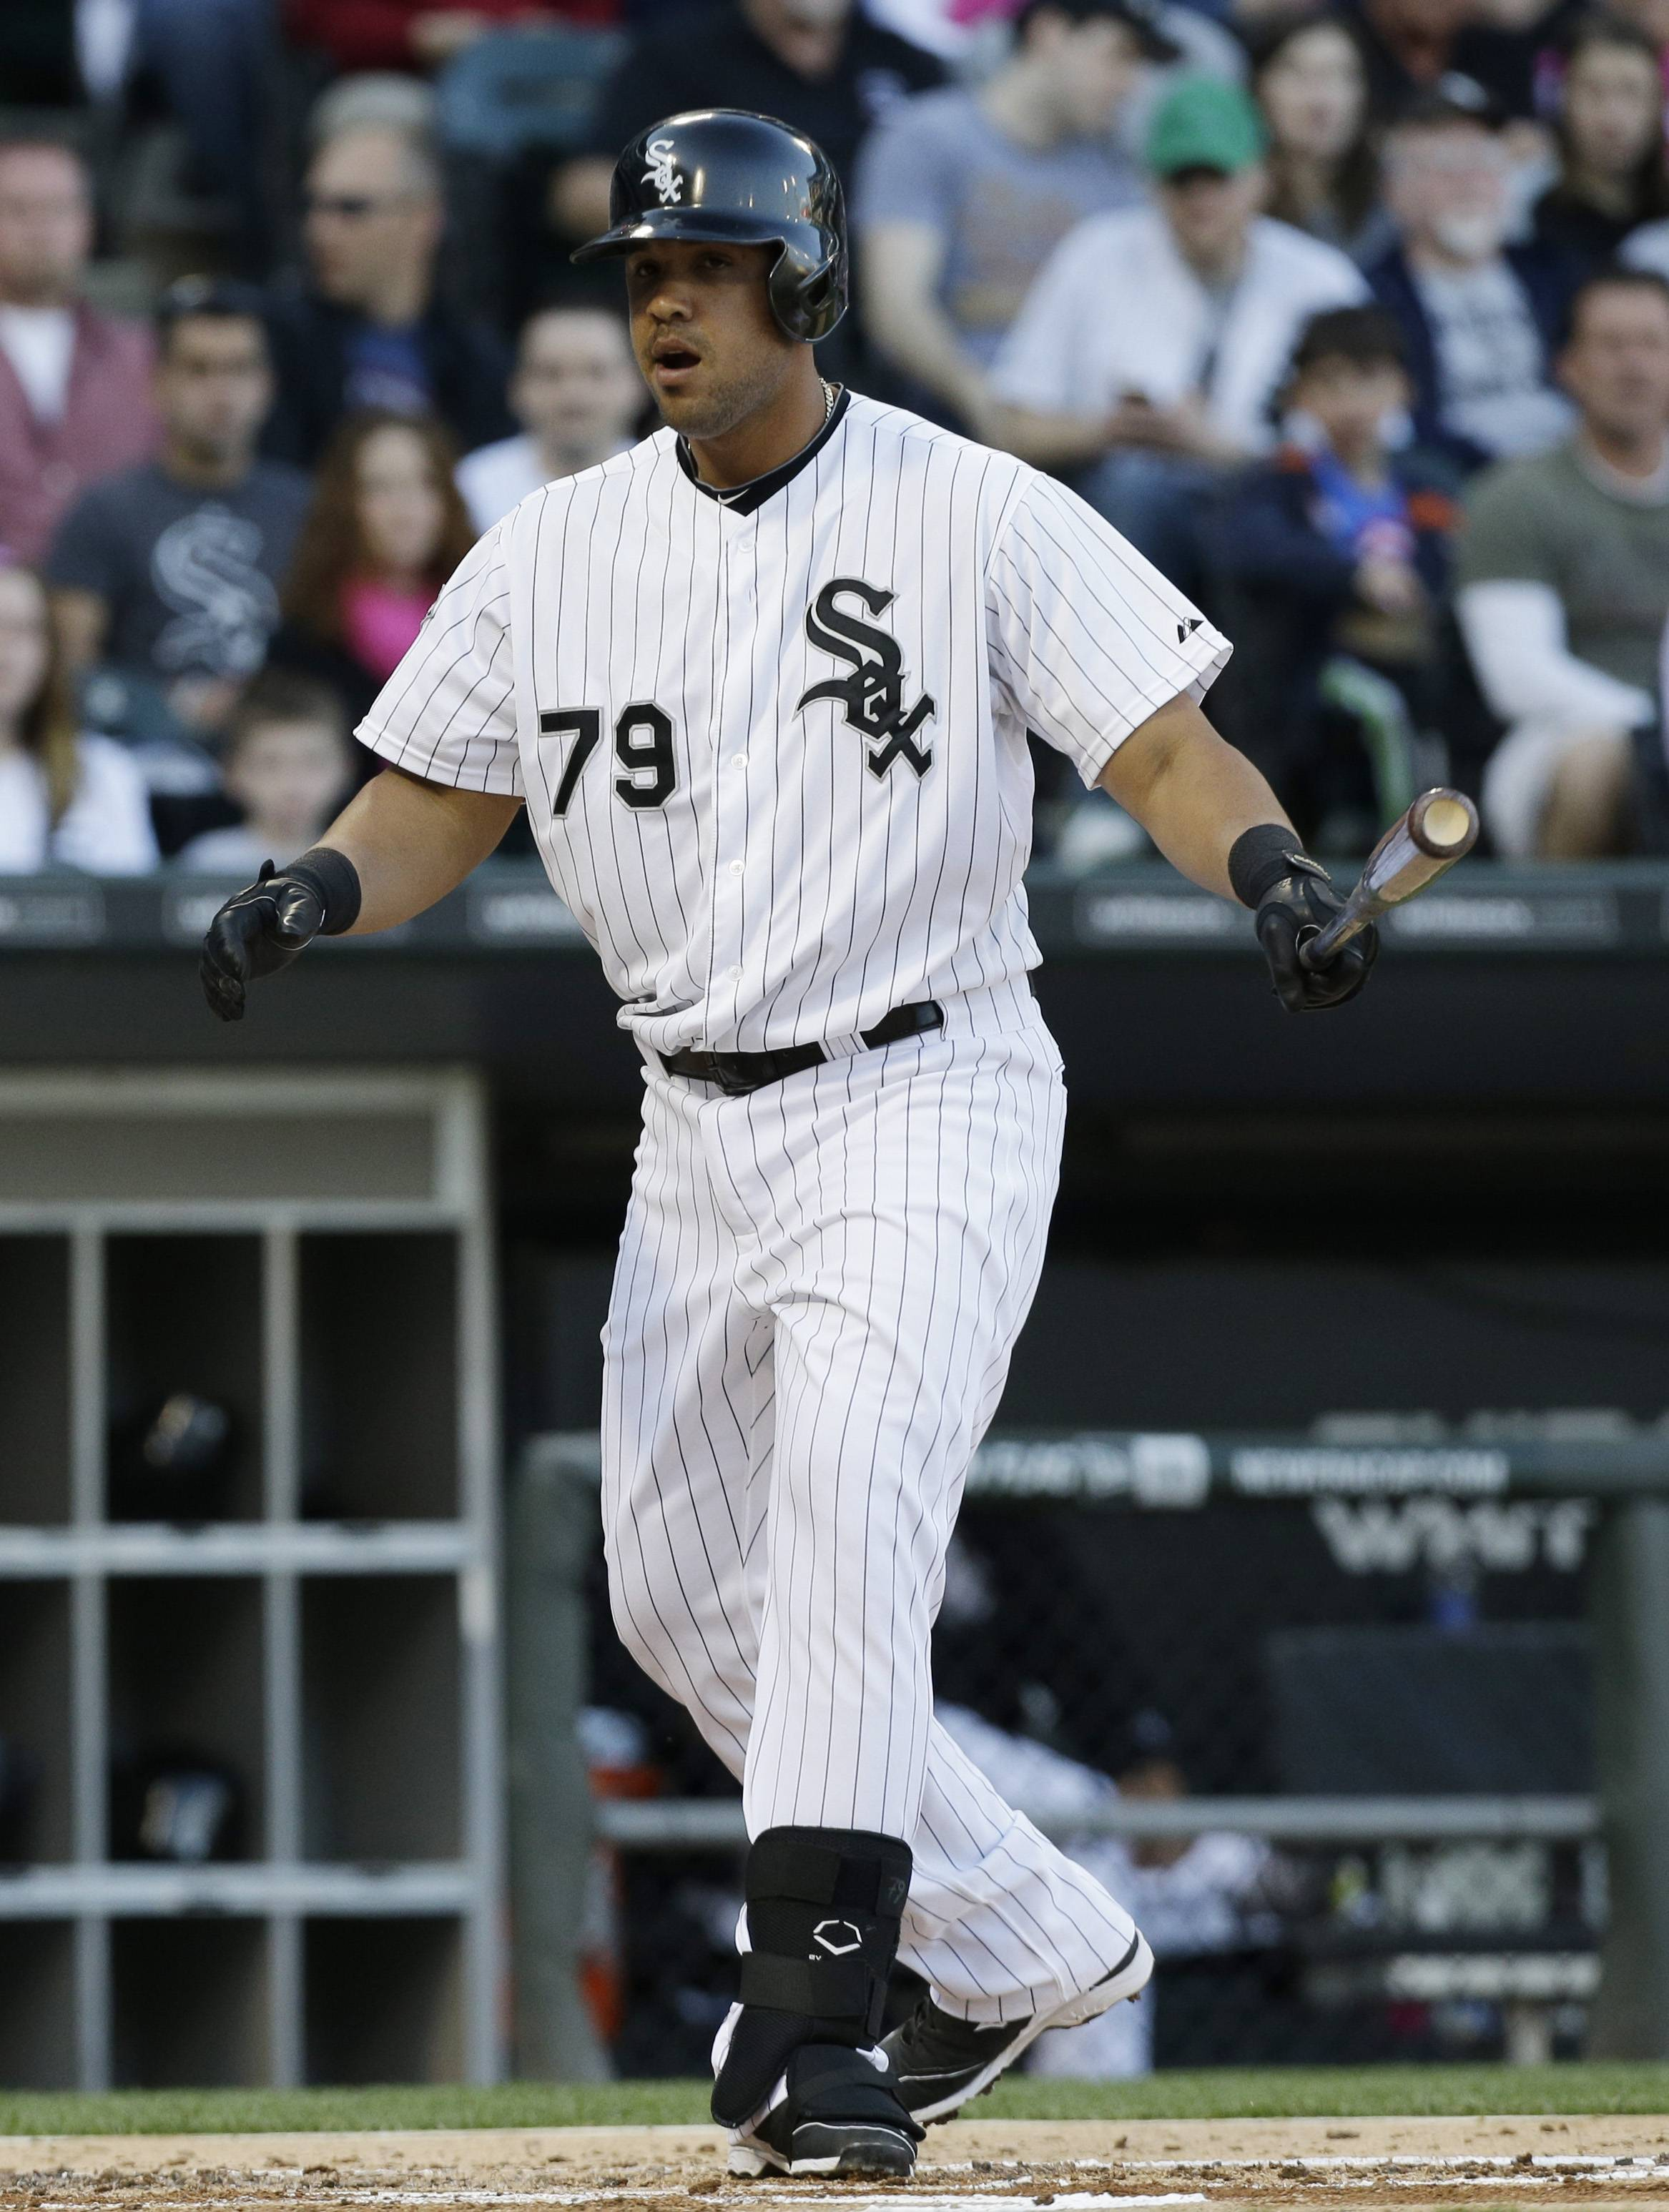 Jose Abreu reacts after striking out swinging during the first inning Saturday against the Arizona Diamondbacks in Chicago.